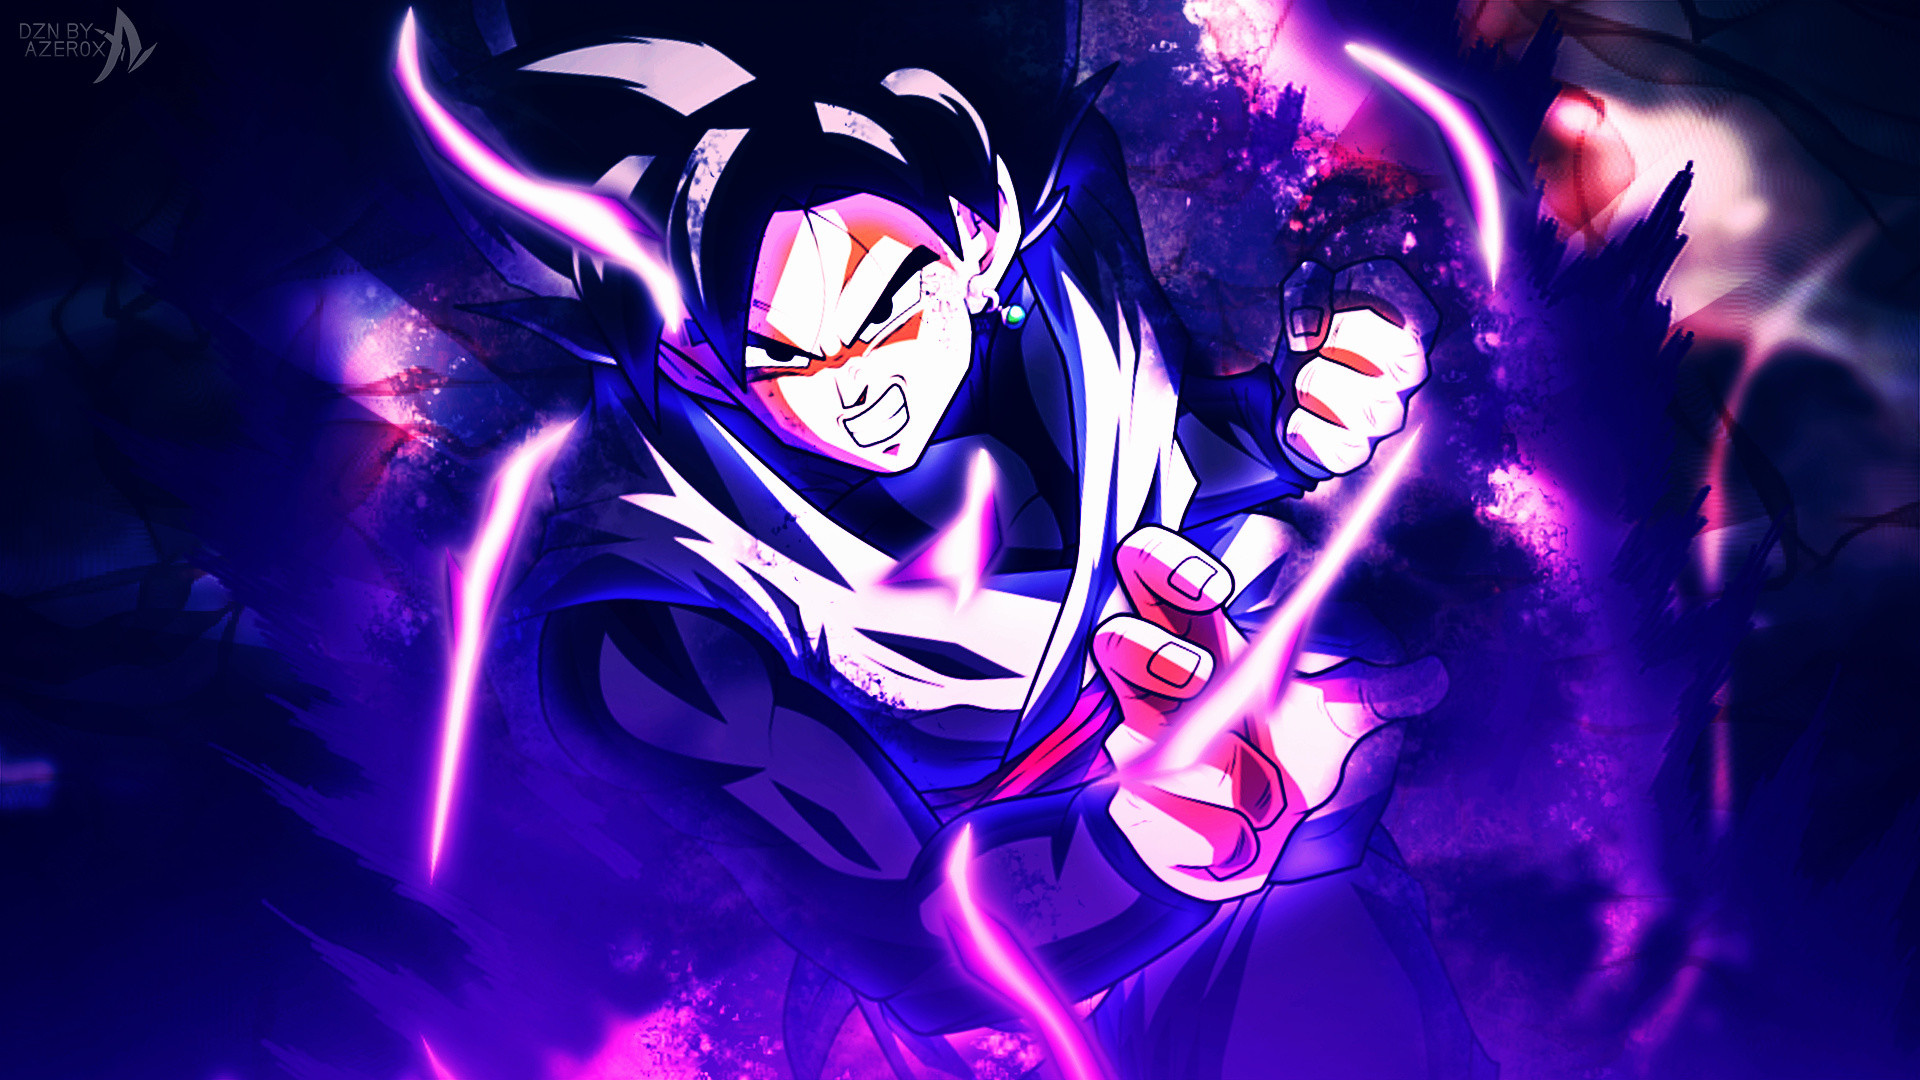 Goku And Vegeta Metal Cooler Wallpaper Oirigns Jpg 1920x1080 Dbz